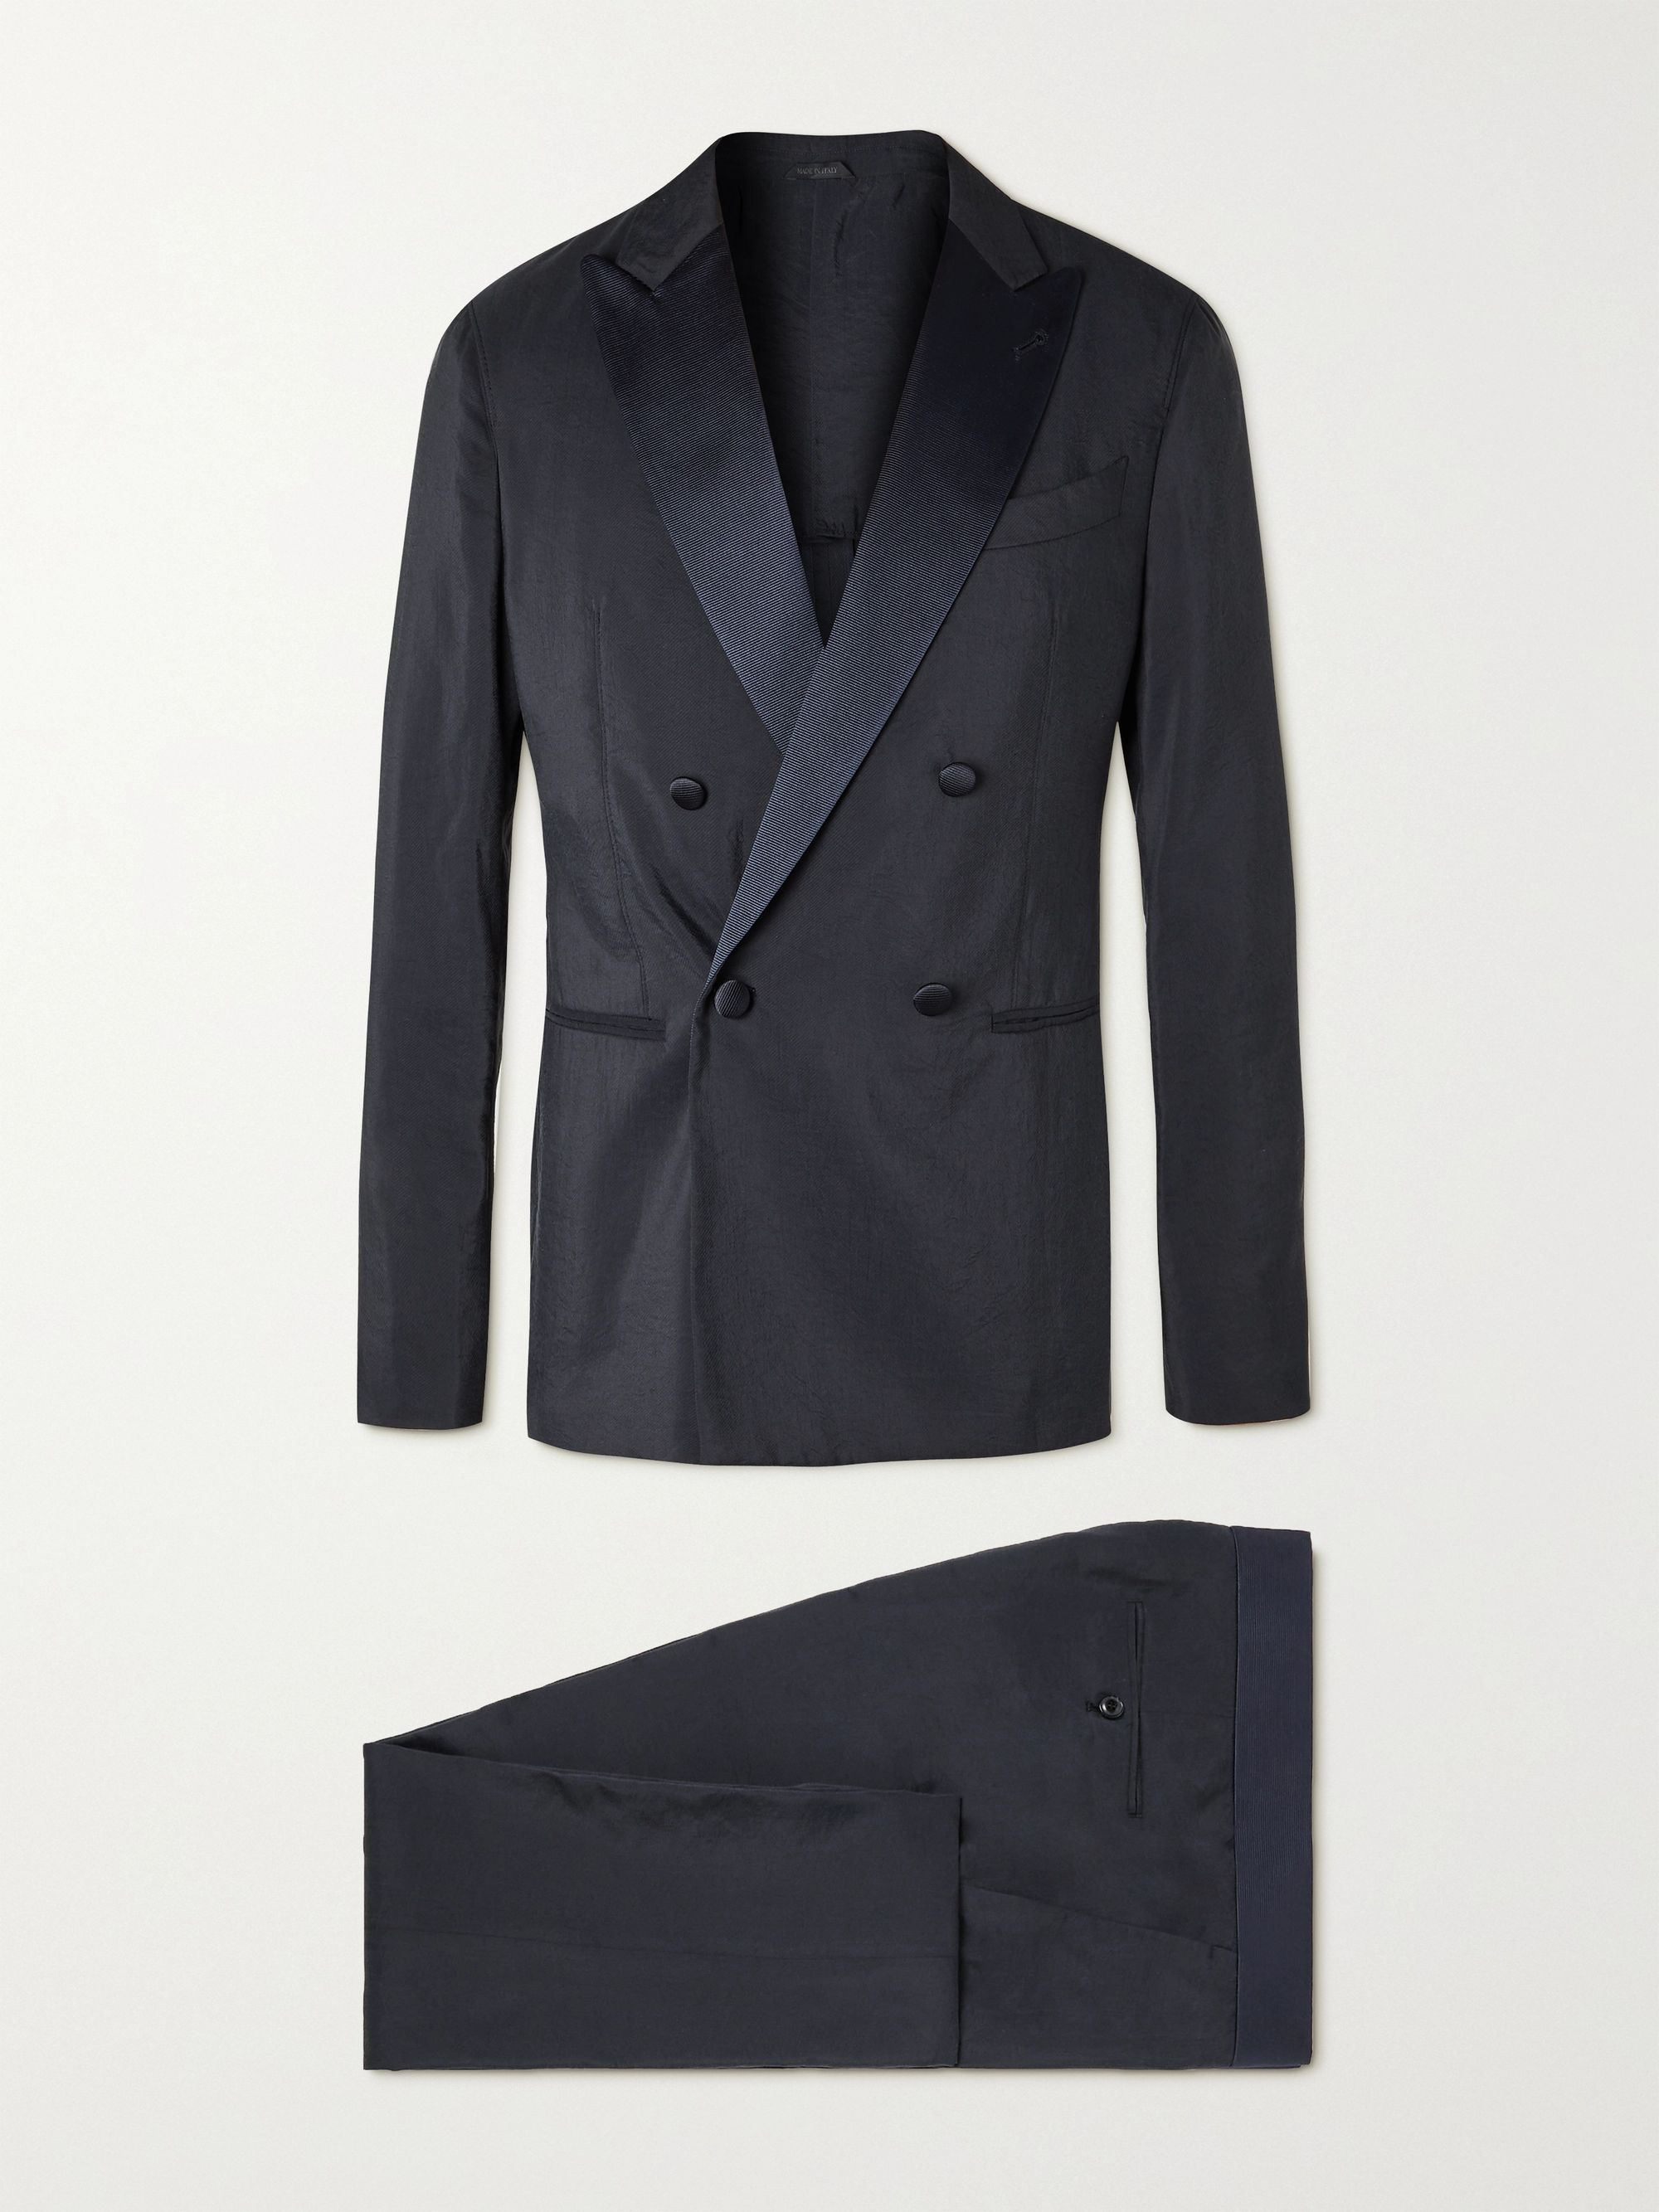 GIORGIO ARMANI Slim-Fit Silk-Blend Twill Suit